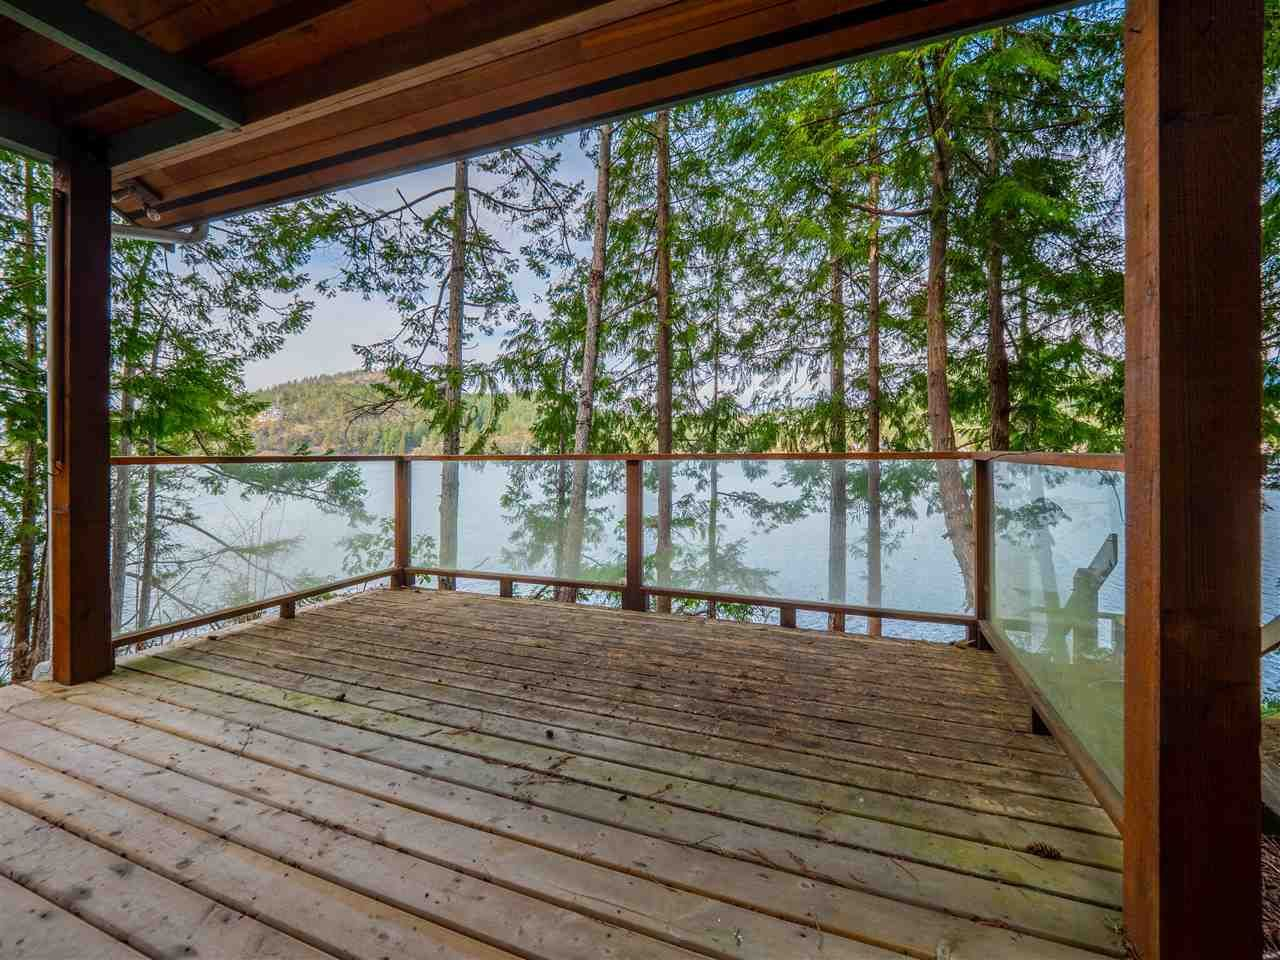 Photo 6: Photos: 4216 FRANCIS PENINSULA Road in Madeira Park: Pender Harbour Egmont House for sale (Sunshine Coast)  : MLS®# R2549311